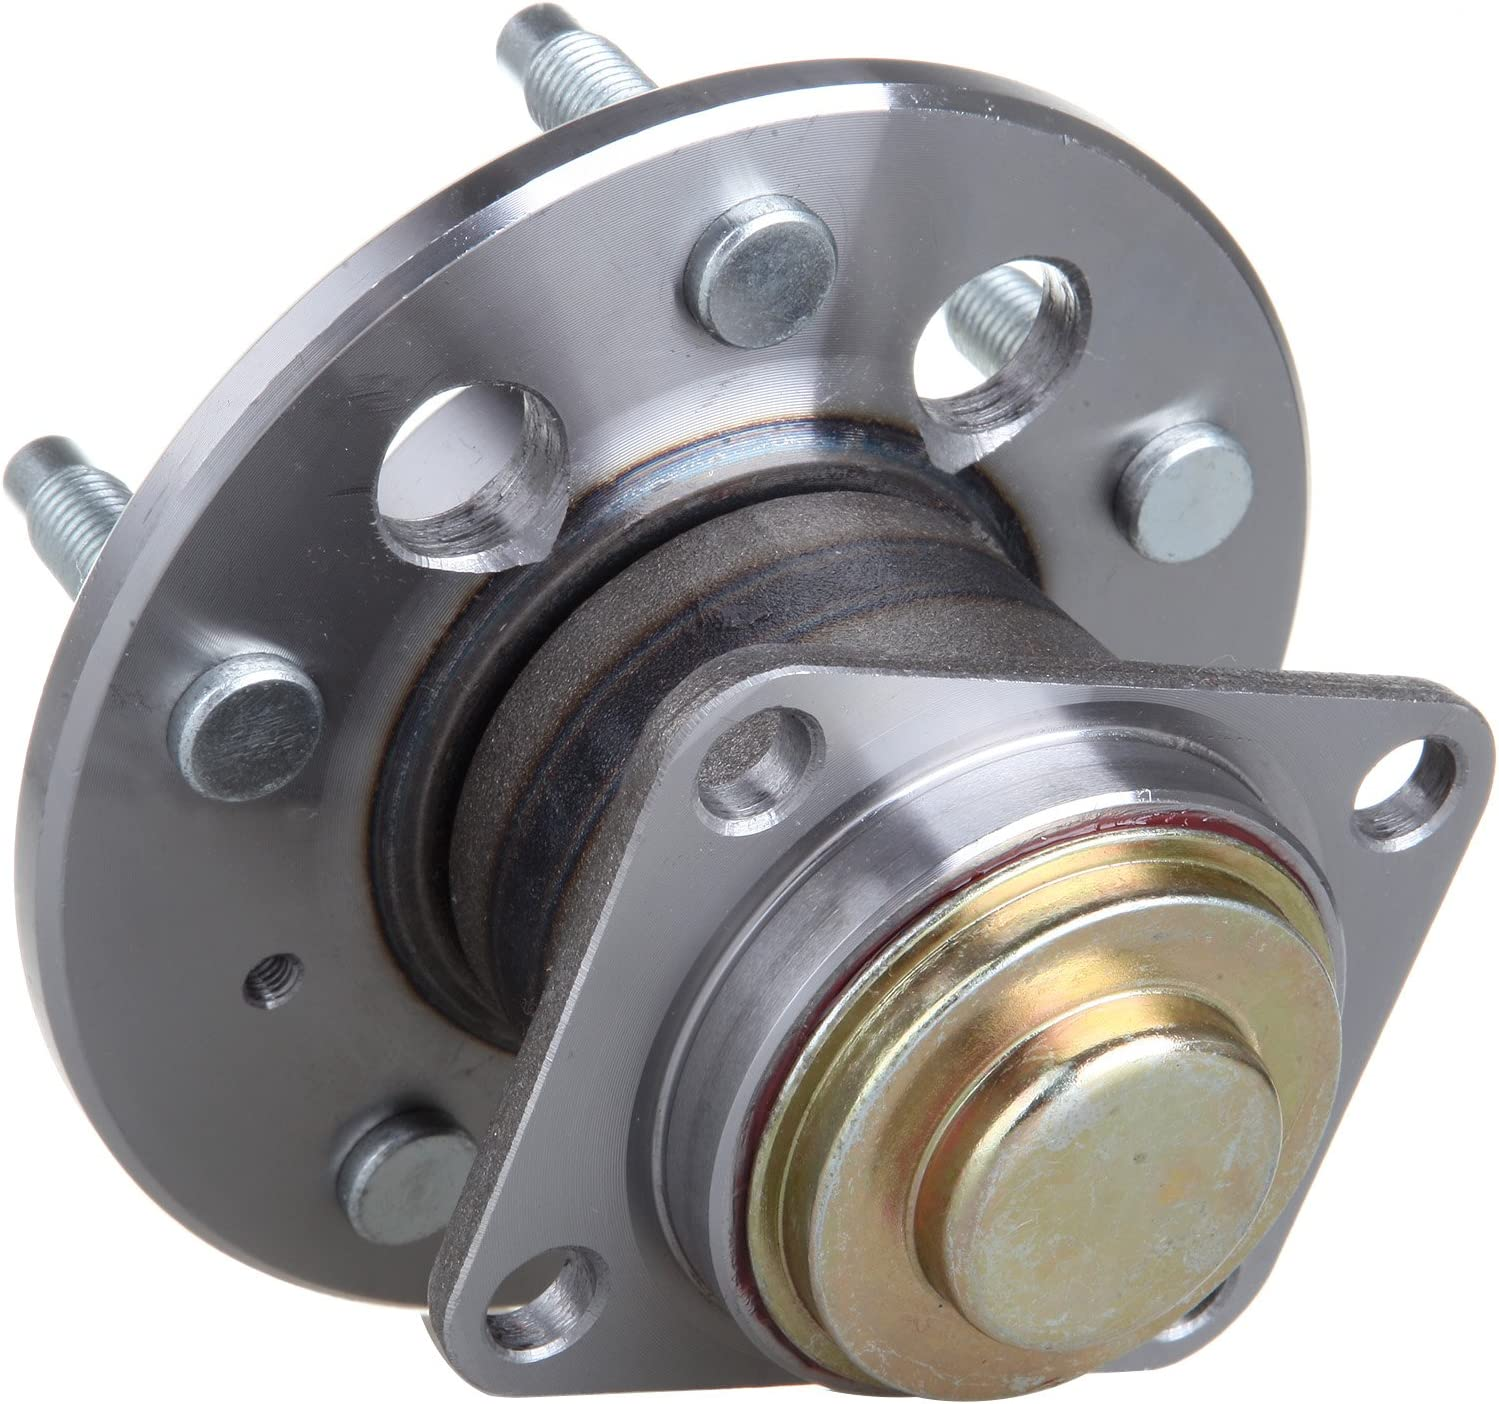 Aintier Rear Wheel Hub Assembly fit Old Cadillac Limited price sale for 40% OFF Cheap Sale Chevy Buick